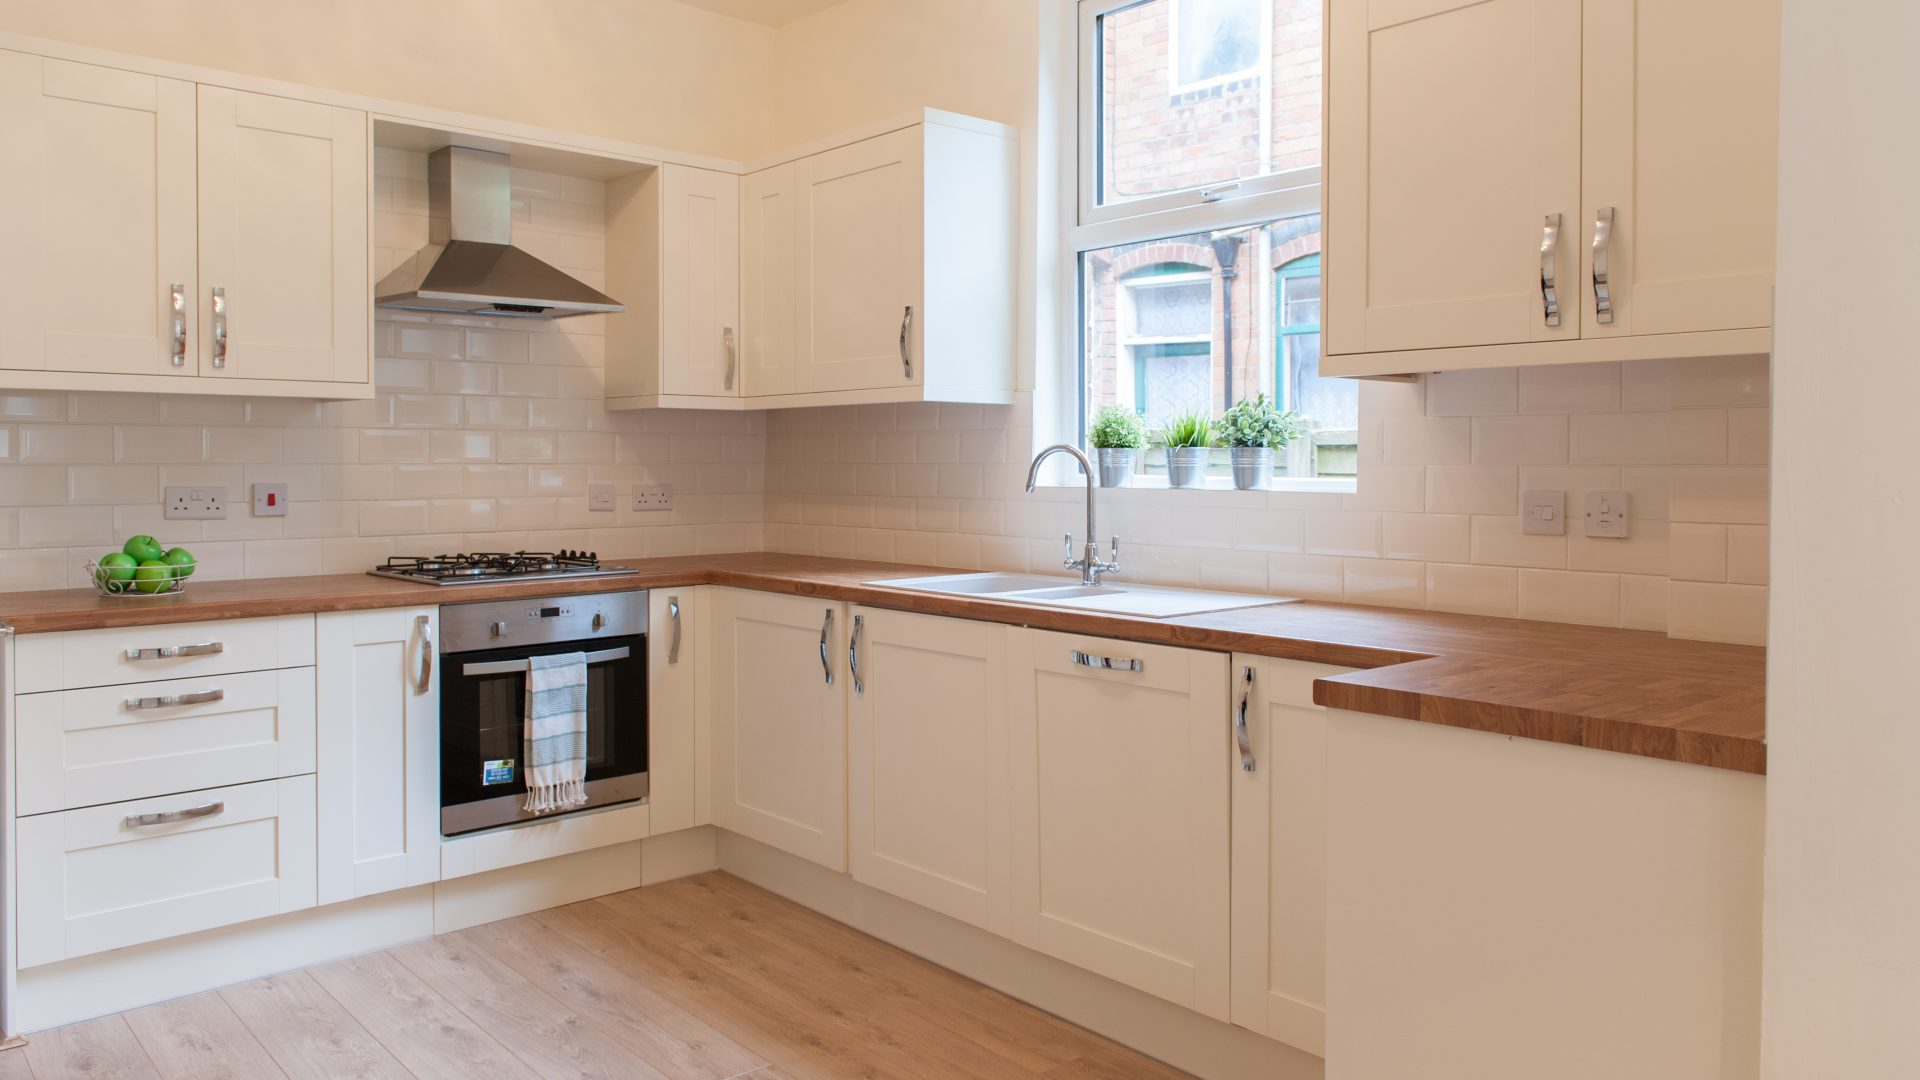 Station Road, Kings Heath for sale with Mr and Mrs Clarke estate agent